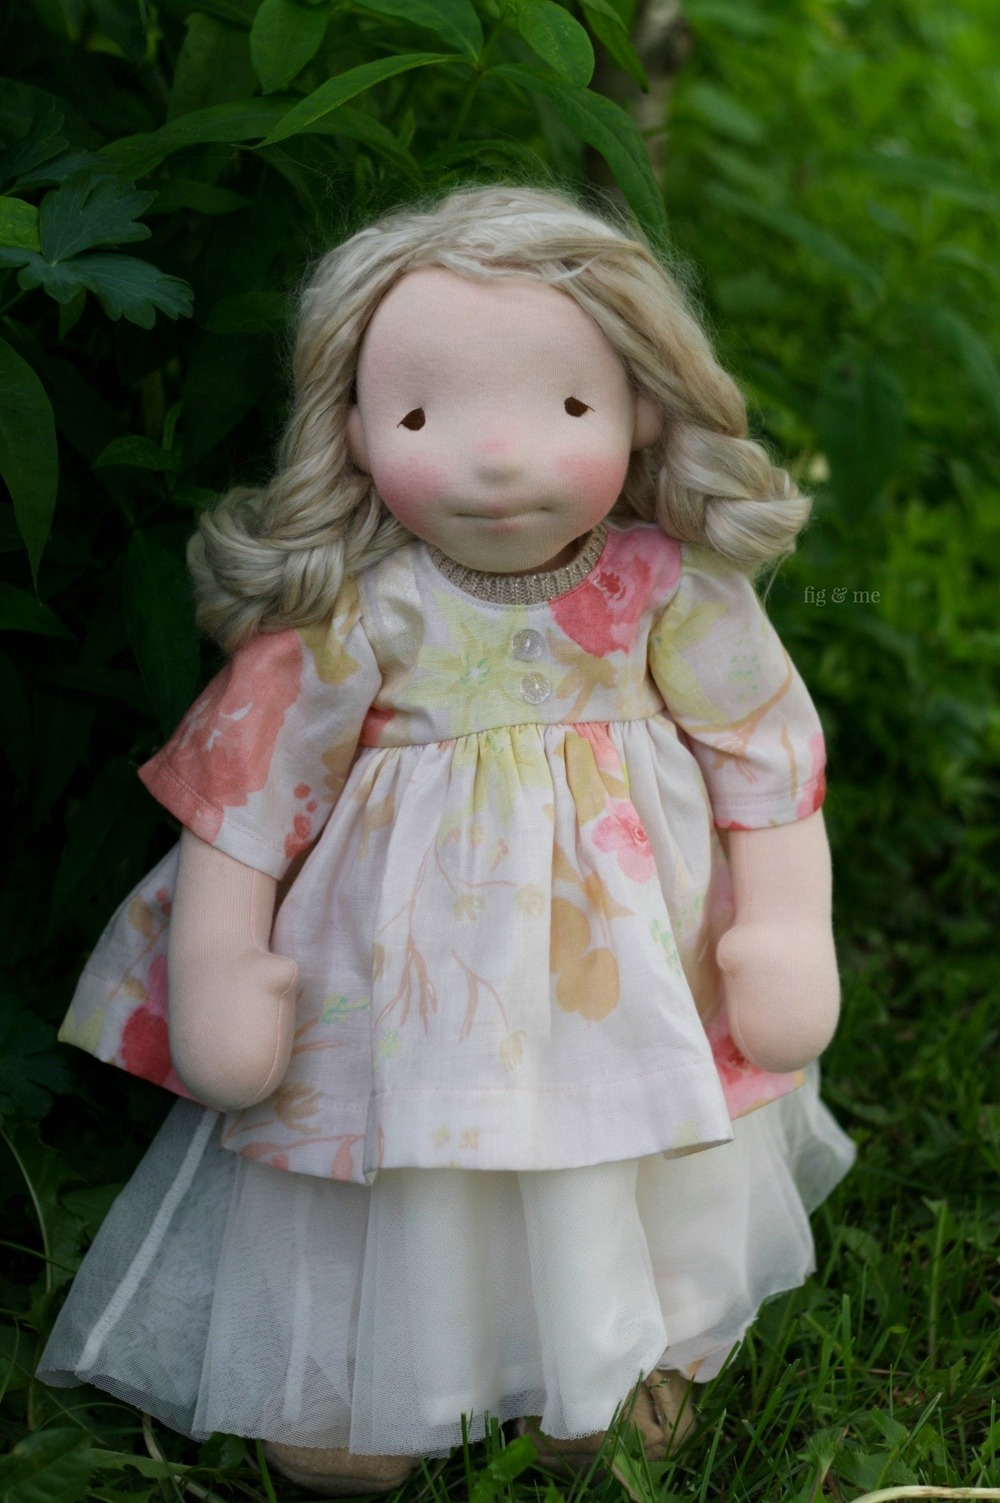 Phoebe, a one of a kind natural fiber art doll, by Fig and Me. She wears a tulle dress with cotton jersey top and a shorter dress/coat made of cotton double gauze with vintage glass buttons. By Fig and Me.